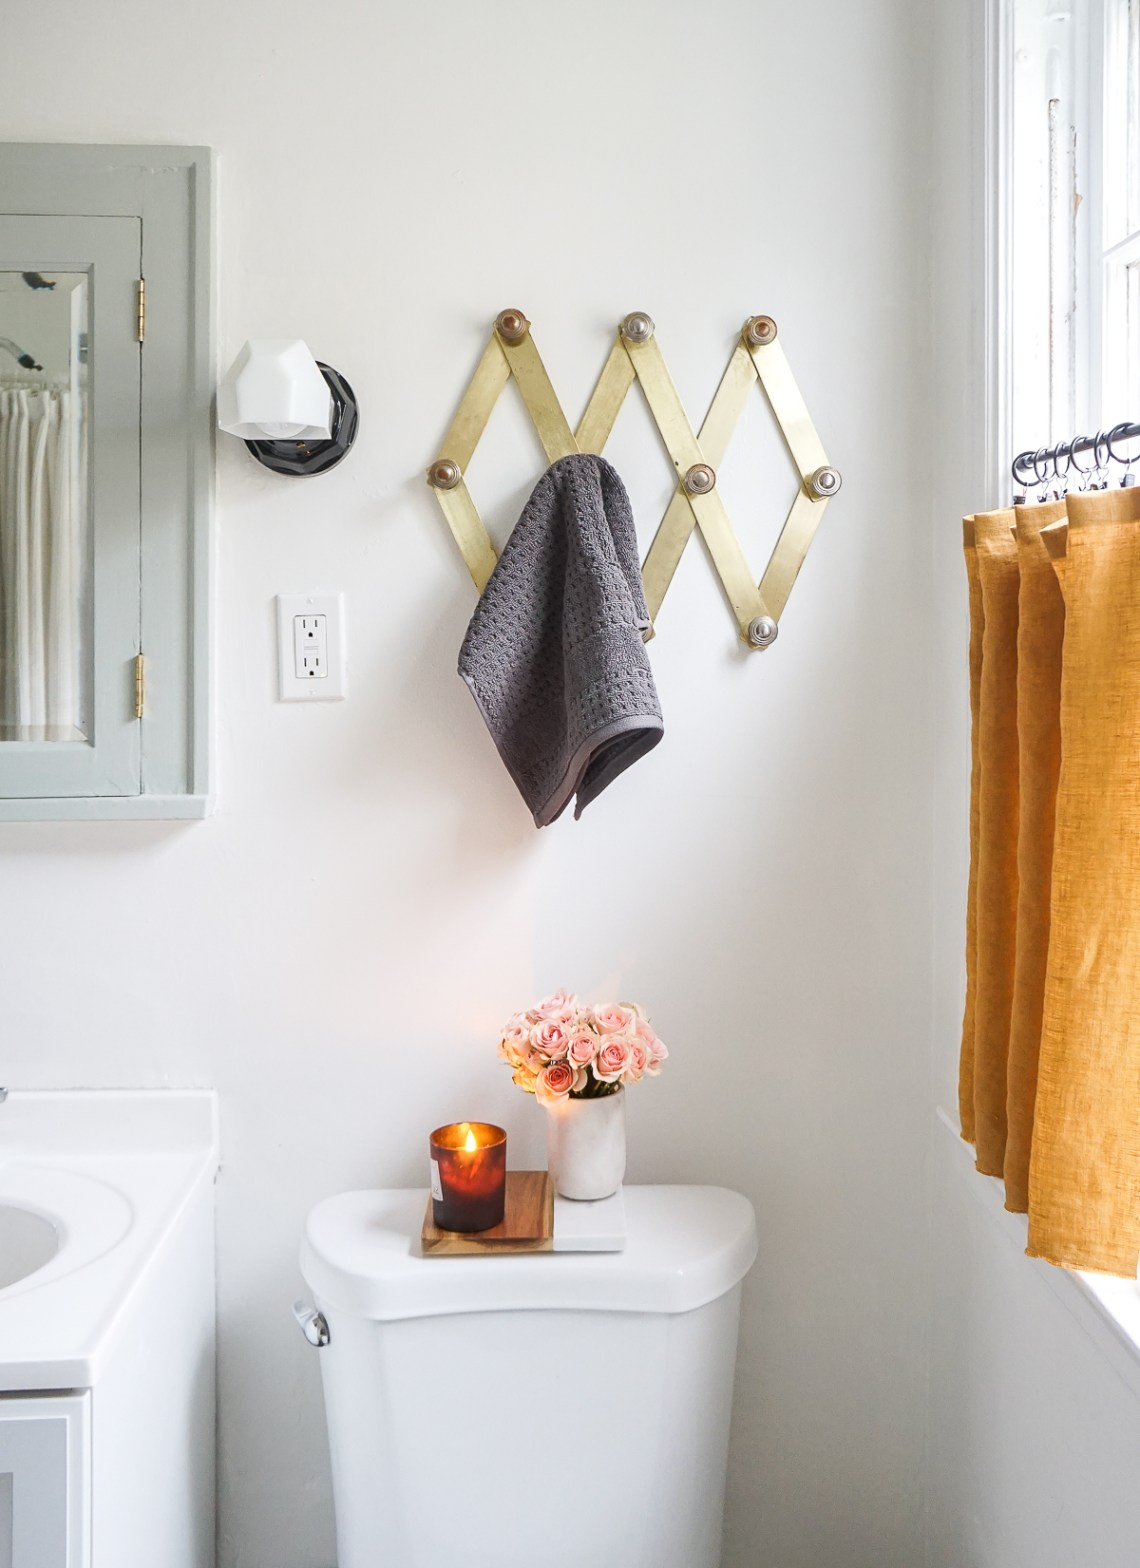 Getting holiday-guest-ready with a budget-friendly bathroom refresh. Come see the easily implementable sensory-focused ideas!